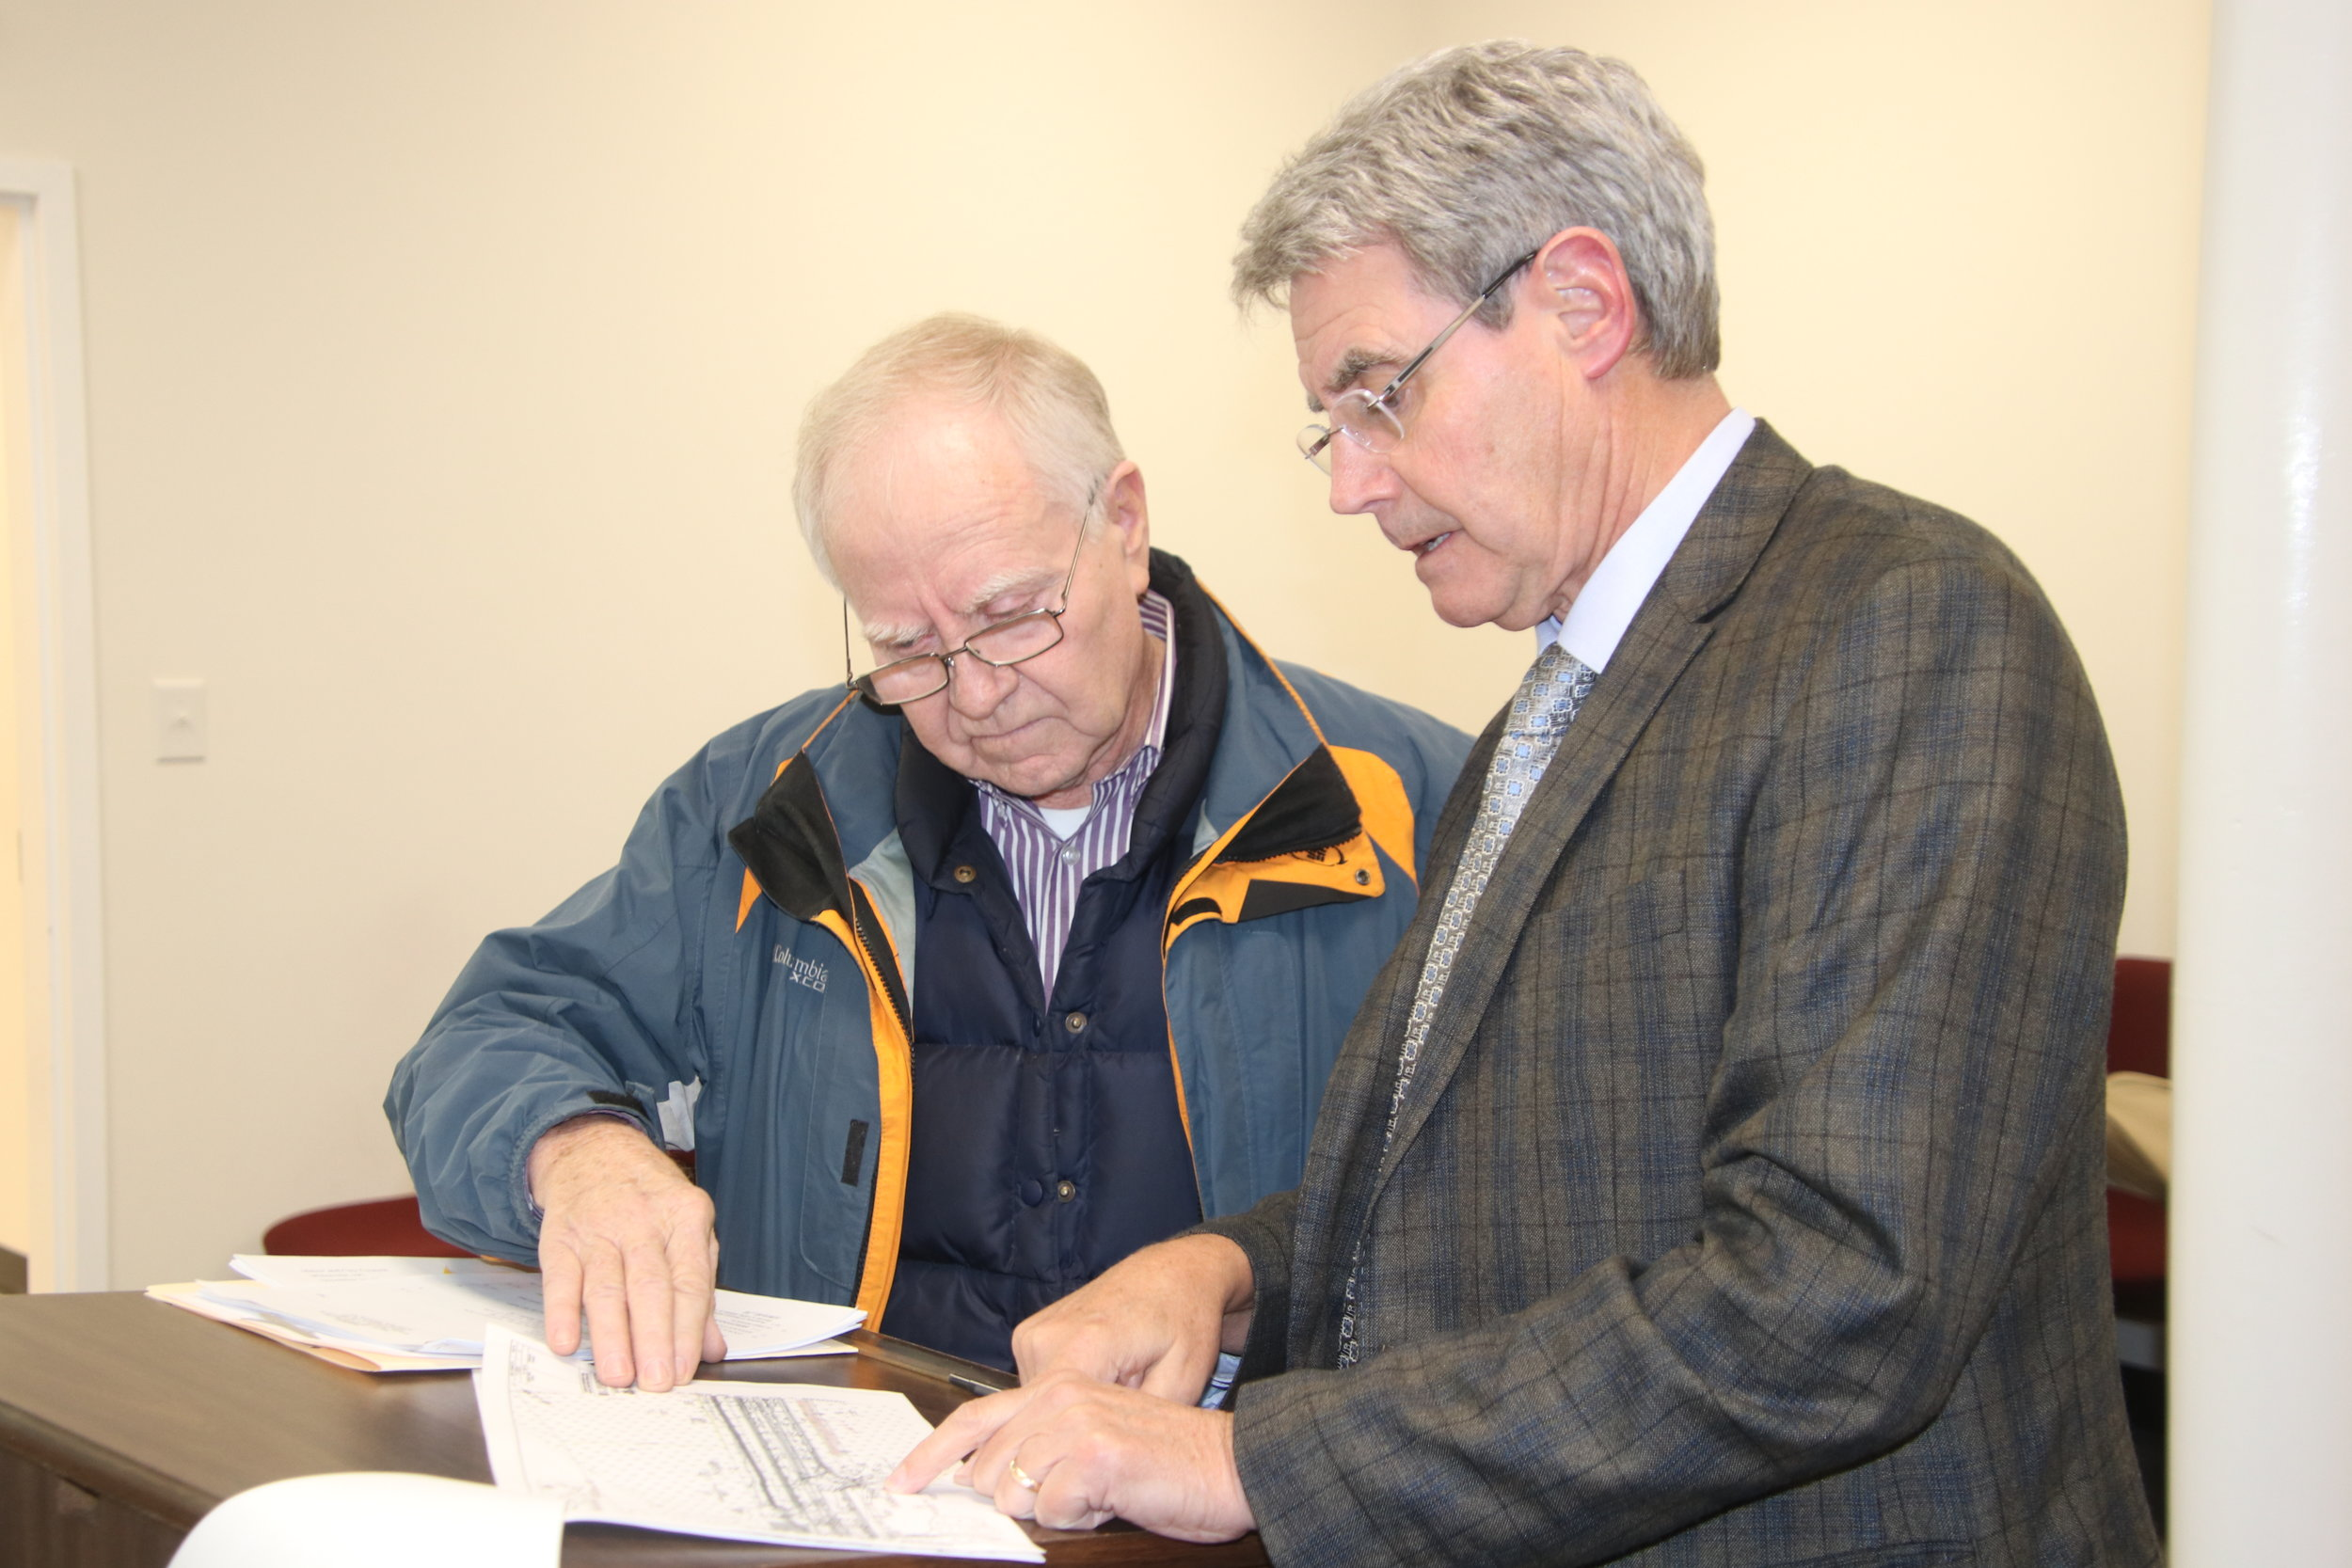 Whiteville City Attorney Carlton Williamson, right, explains the details of a proposed sale of city property to the N.C. Dept. of Transportation to Jim Mauldin during Monday's city council meeting.